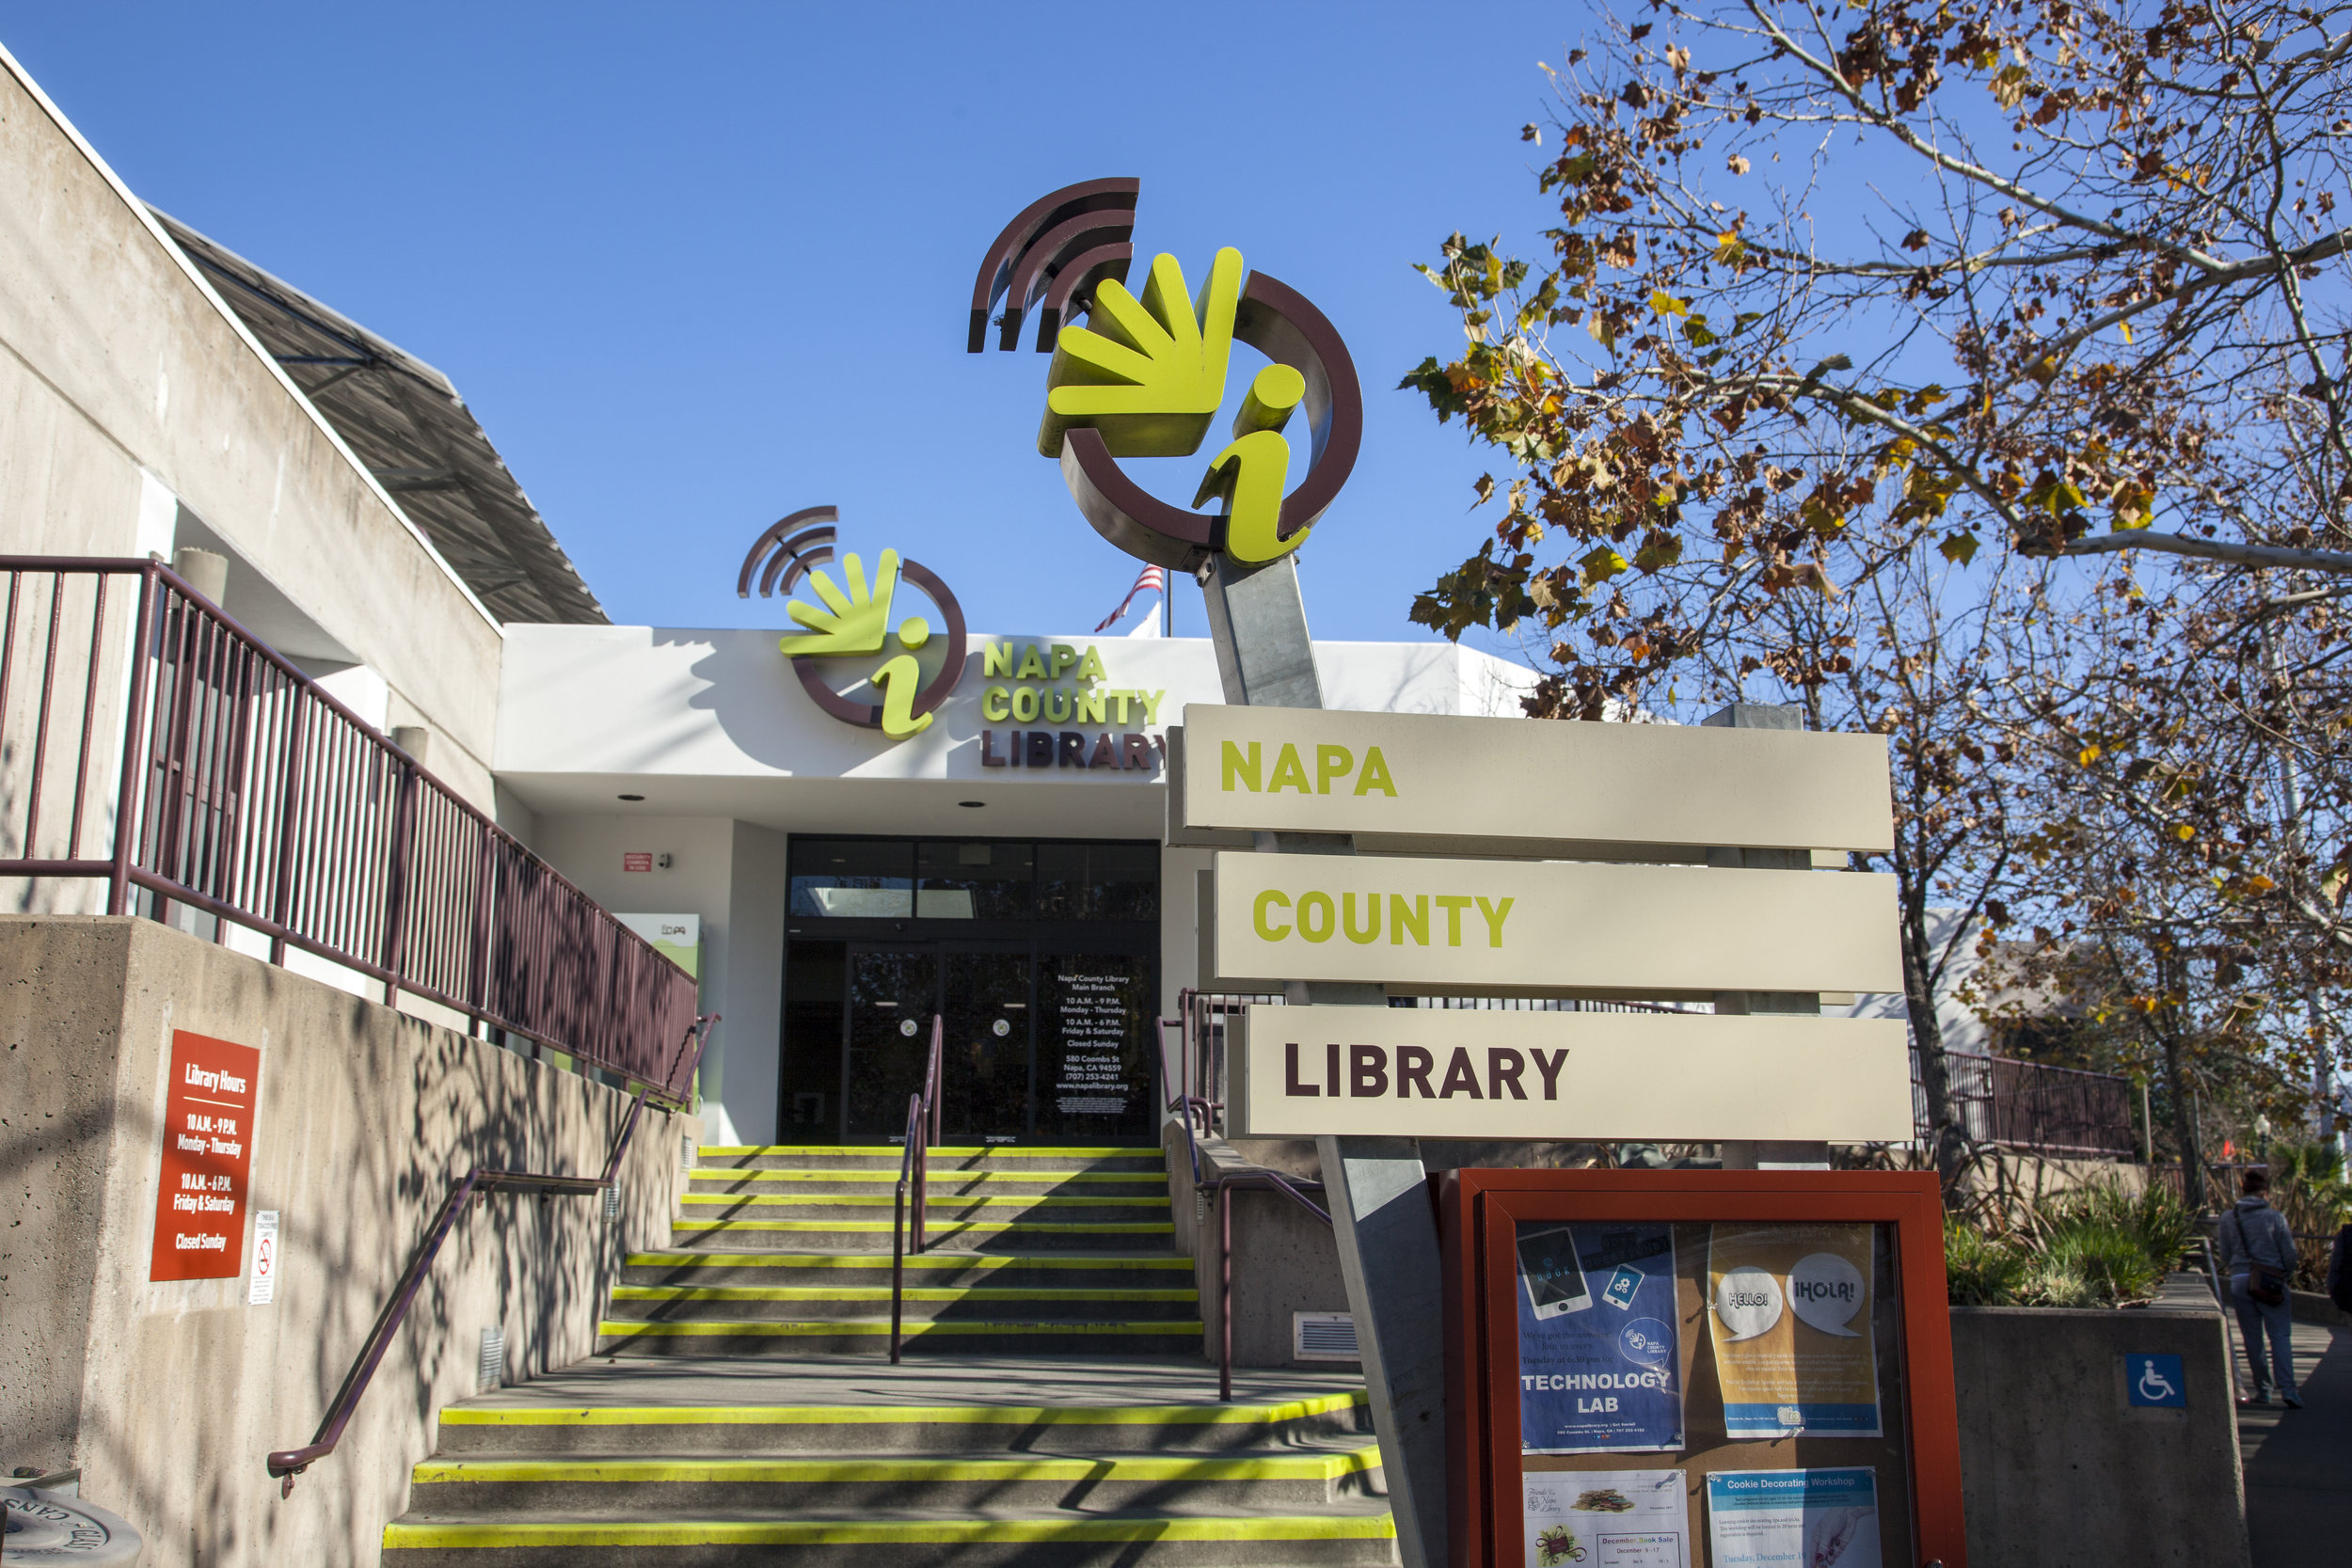 NapaLibrary_outside3.jpg